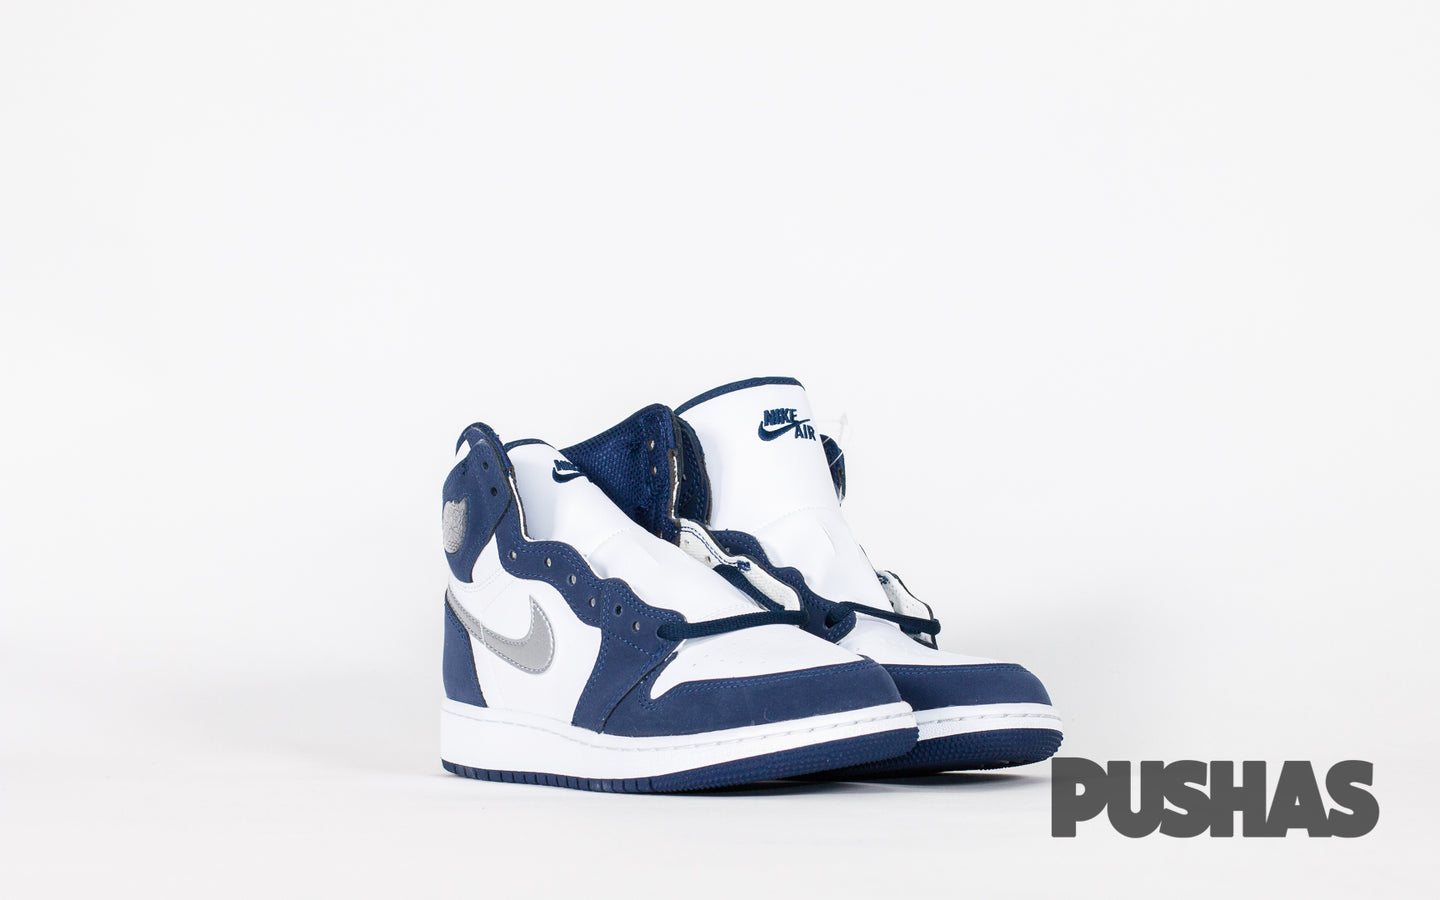 pushas-nike-Air-Jordan-1-CO-Japan-Midnight-Navy-GS-2020